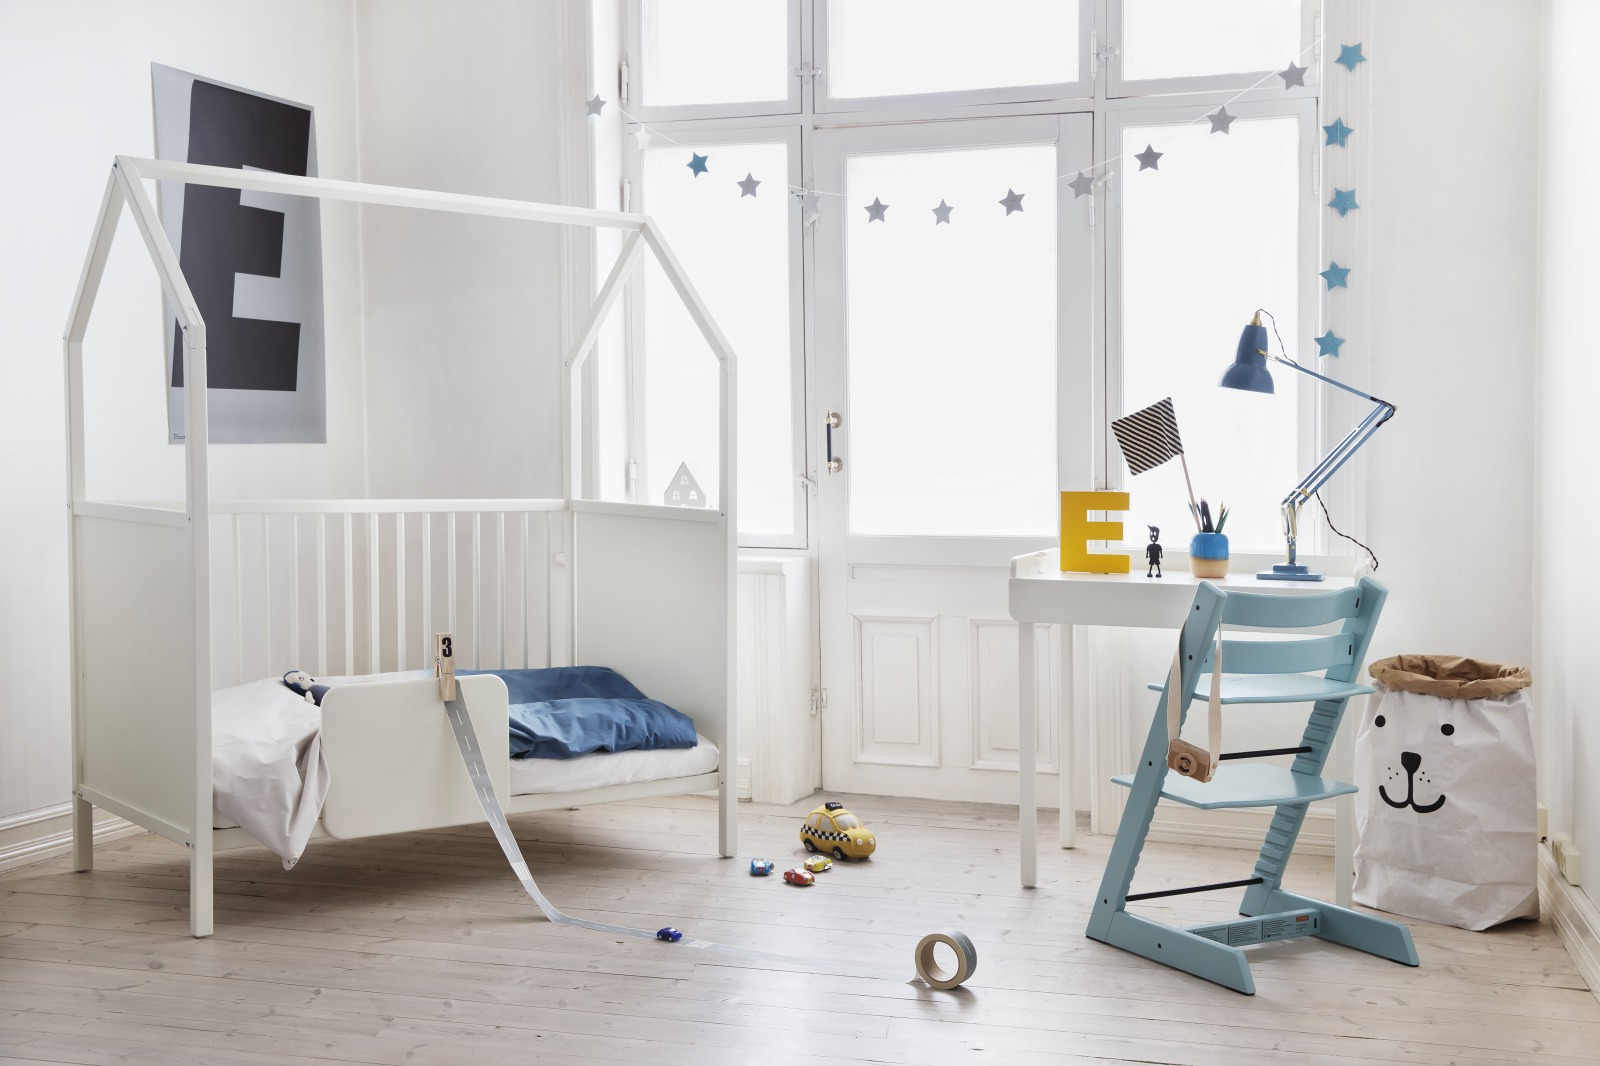 Stokke® Home™ Bed with Bed Guard and Stokke® Home™ Changer as desk.